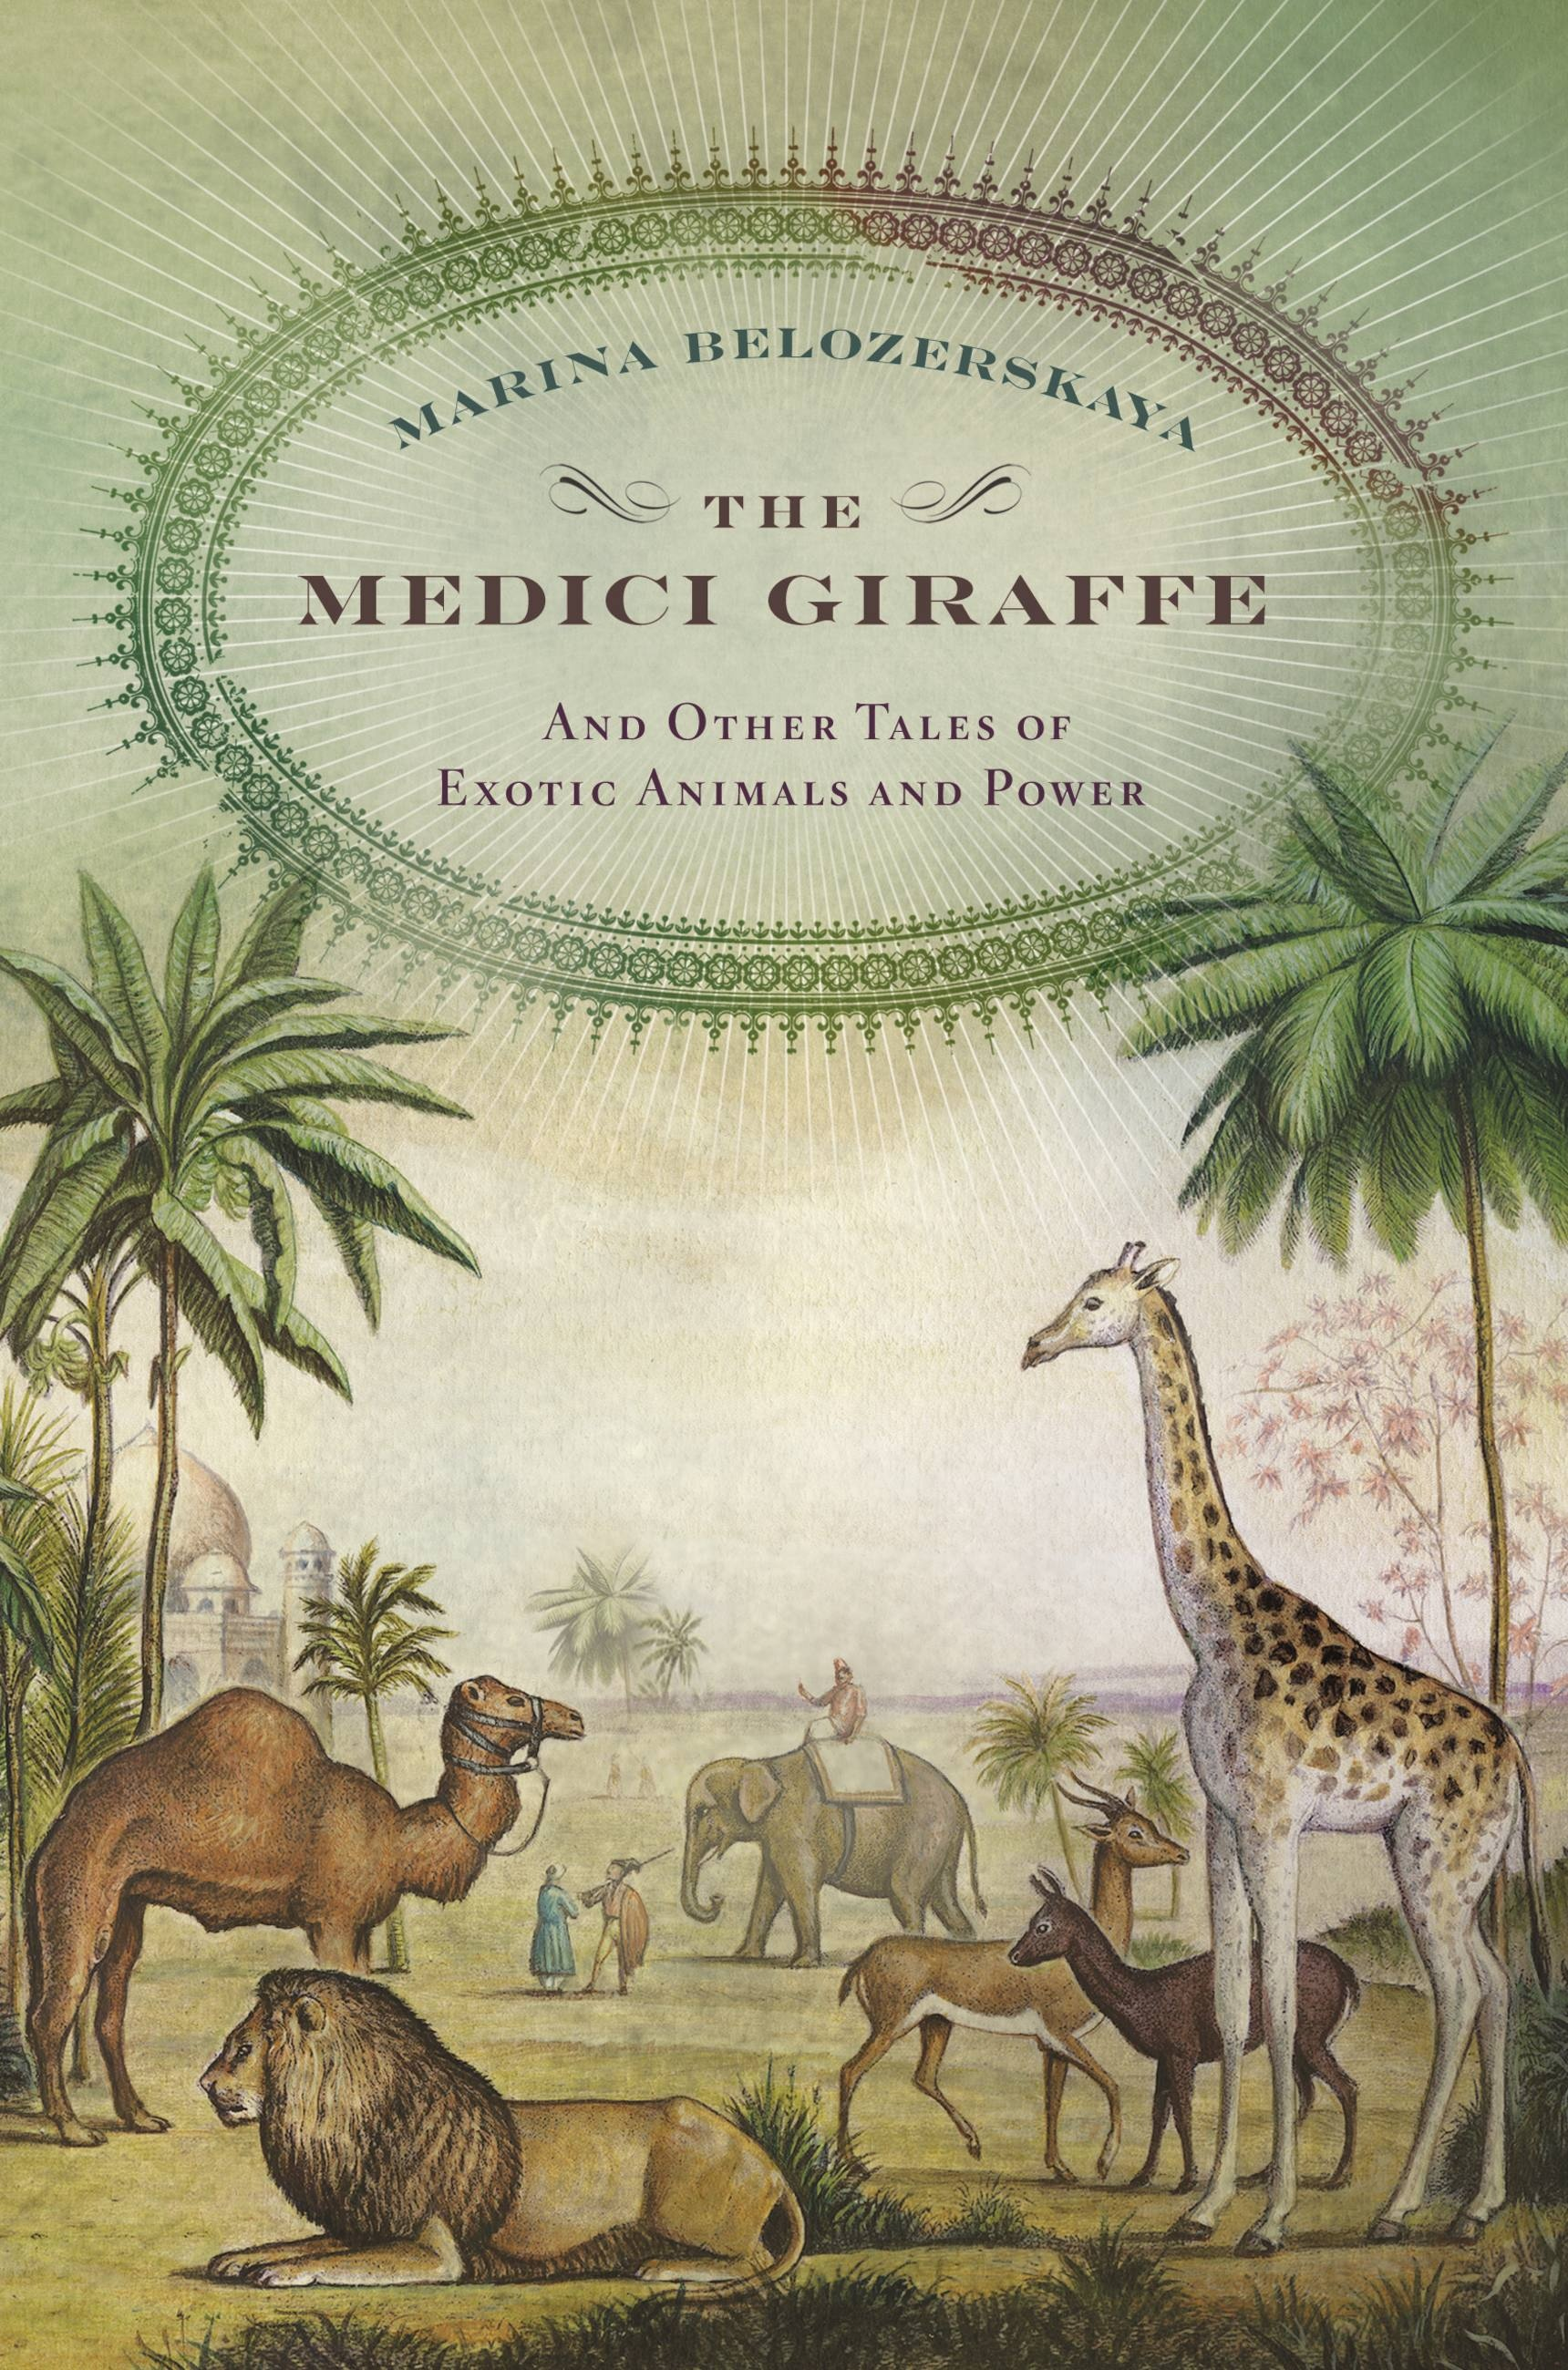 Medici Giraffe, The